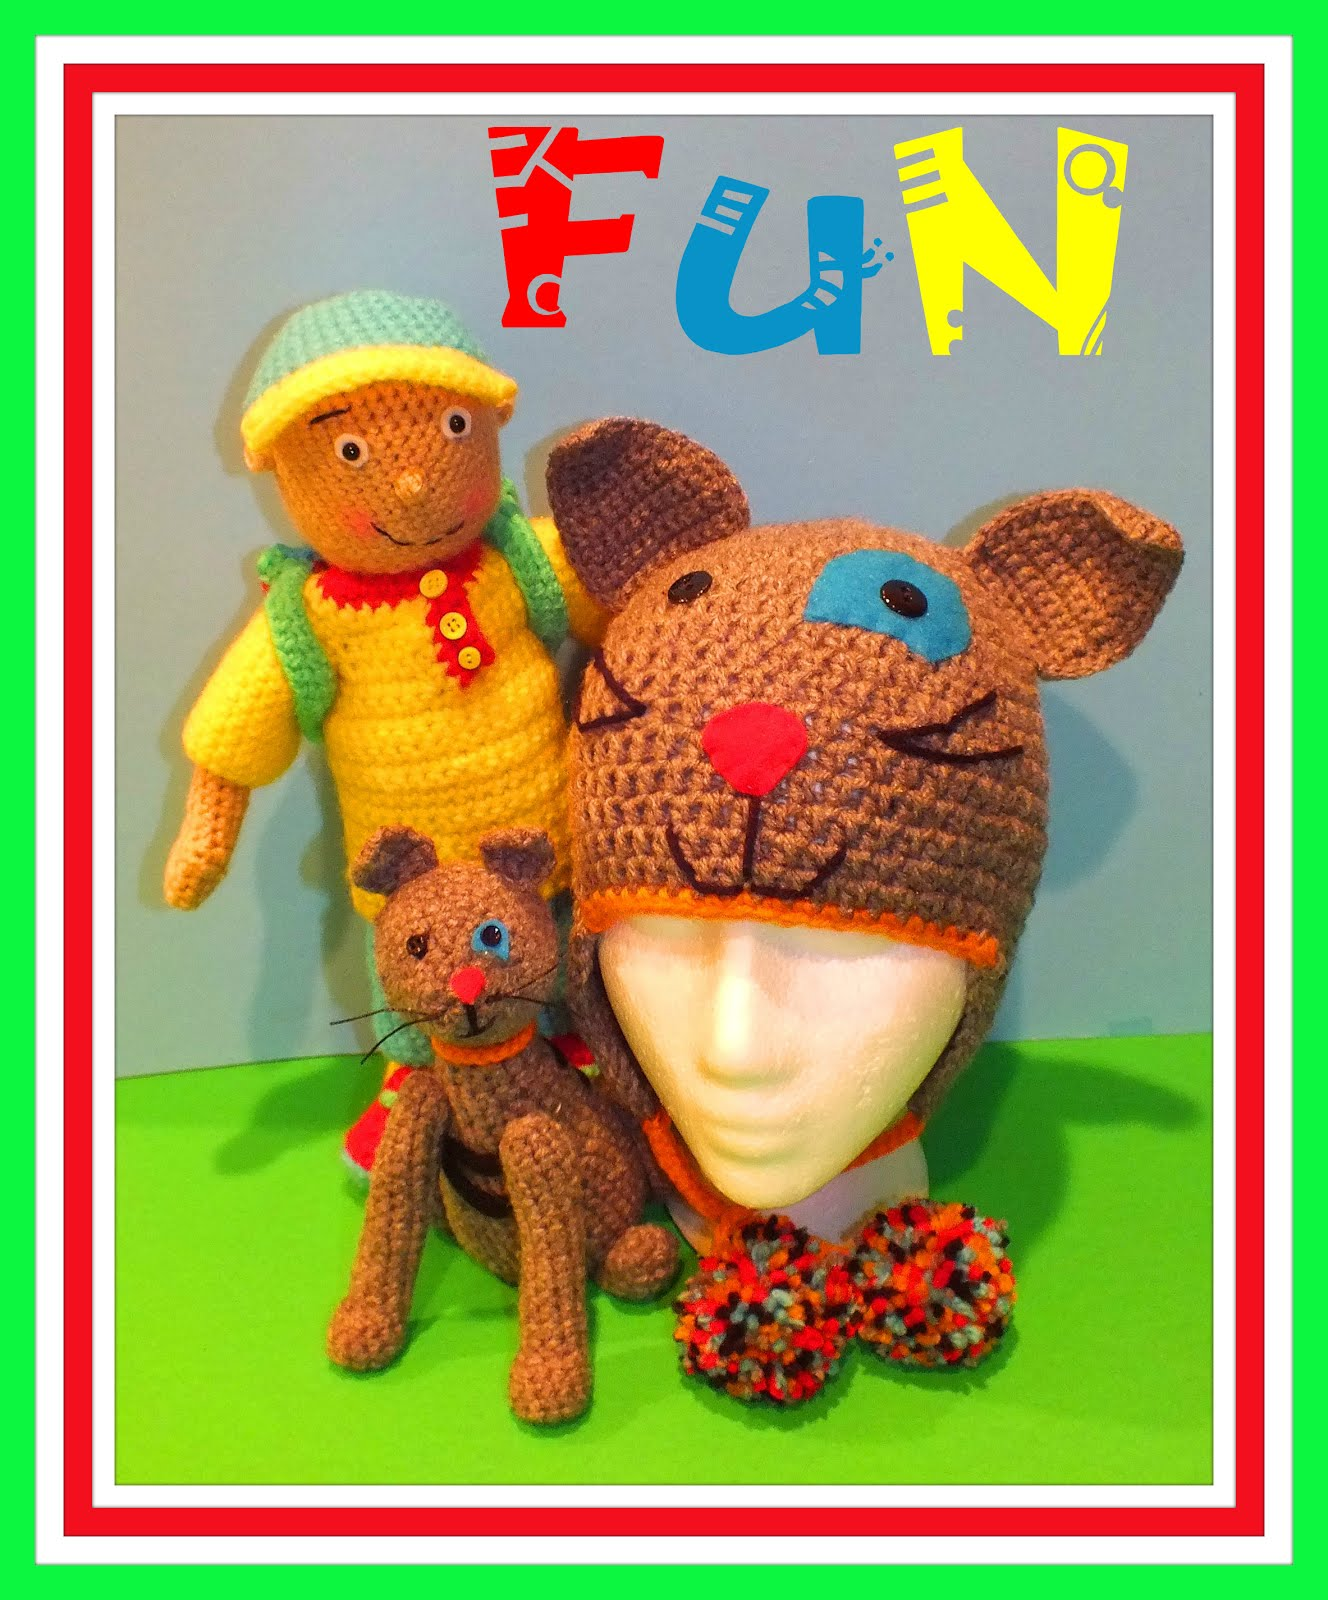 Caillou Inspired Crochet Doll, Cat & Hat Pattern© By Connie Hughes Designs©